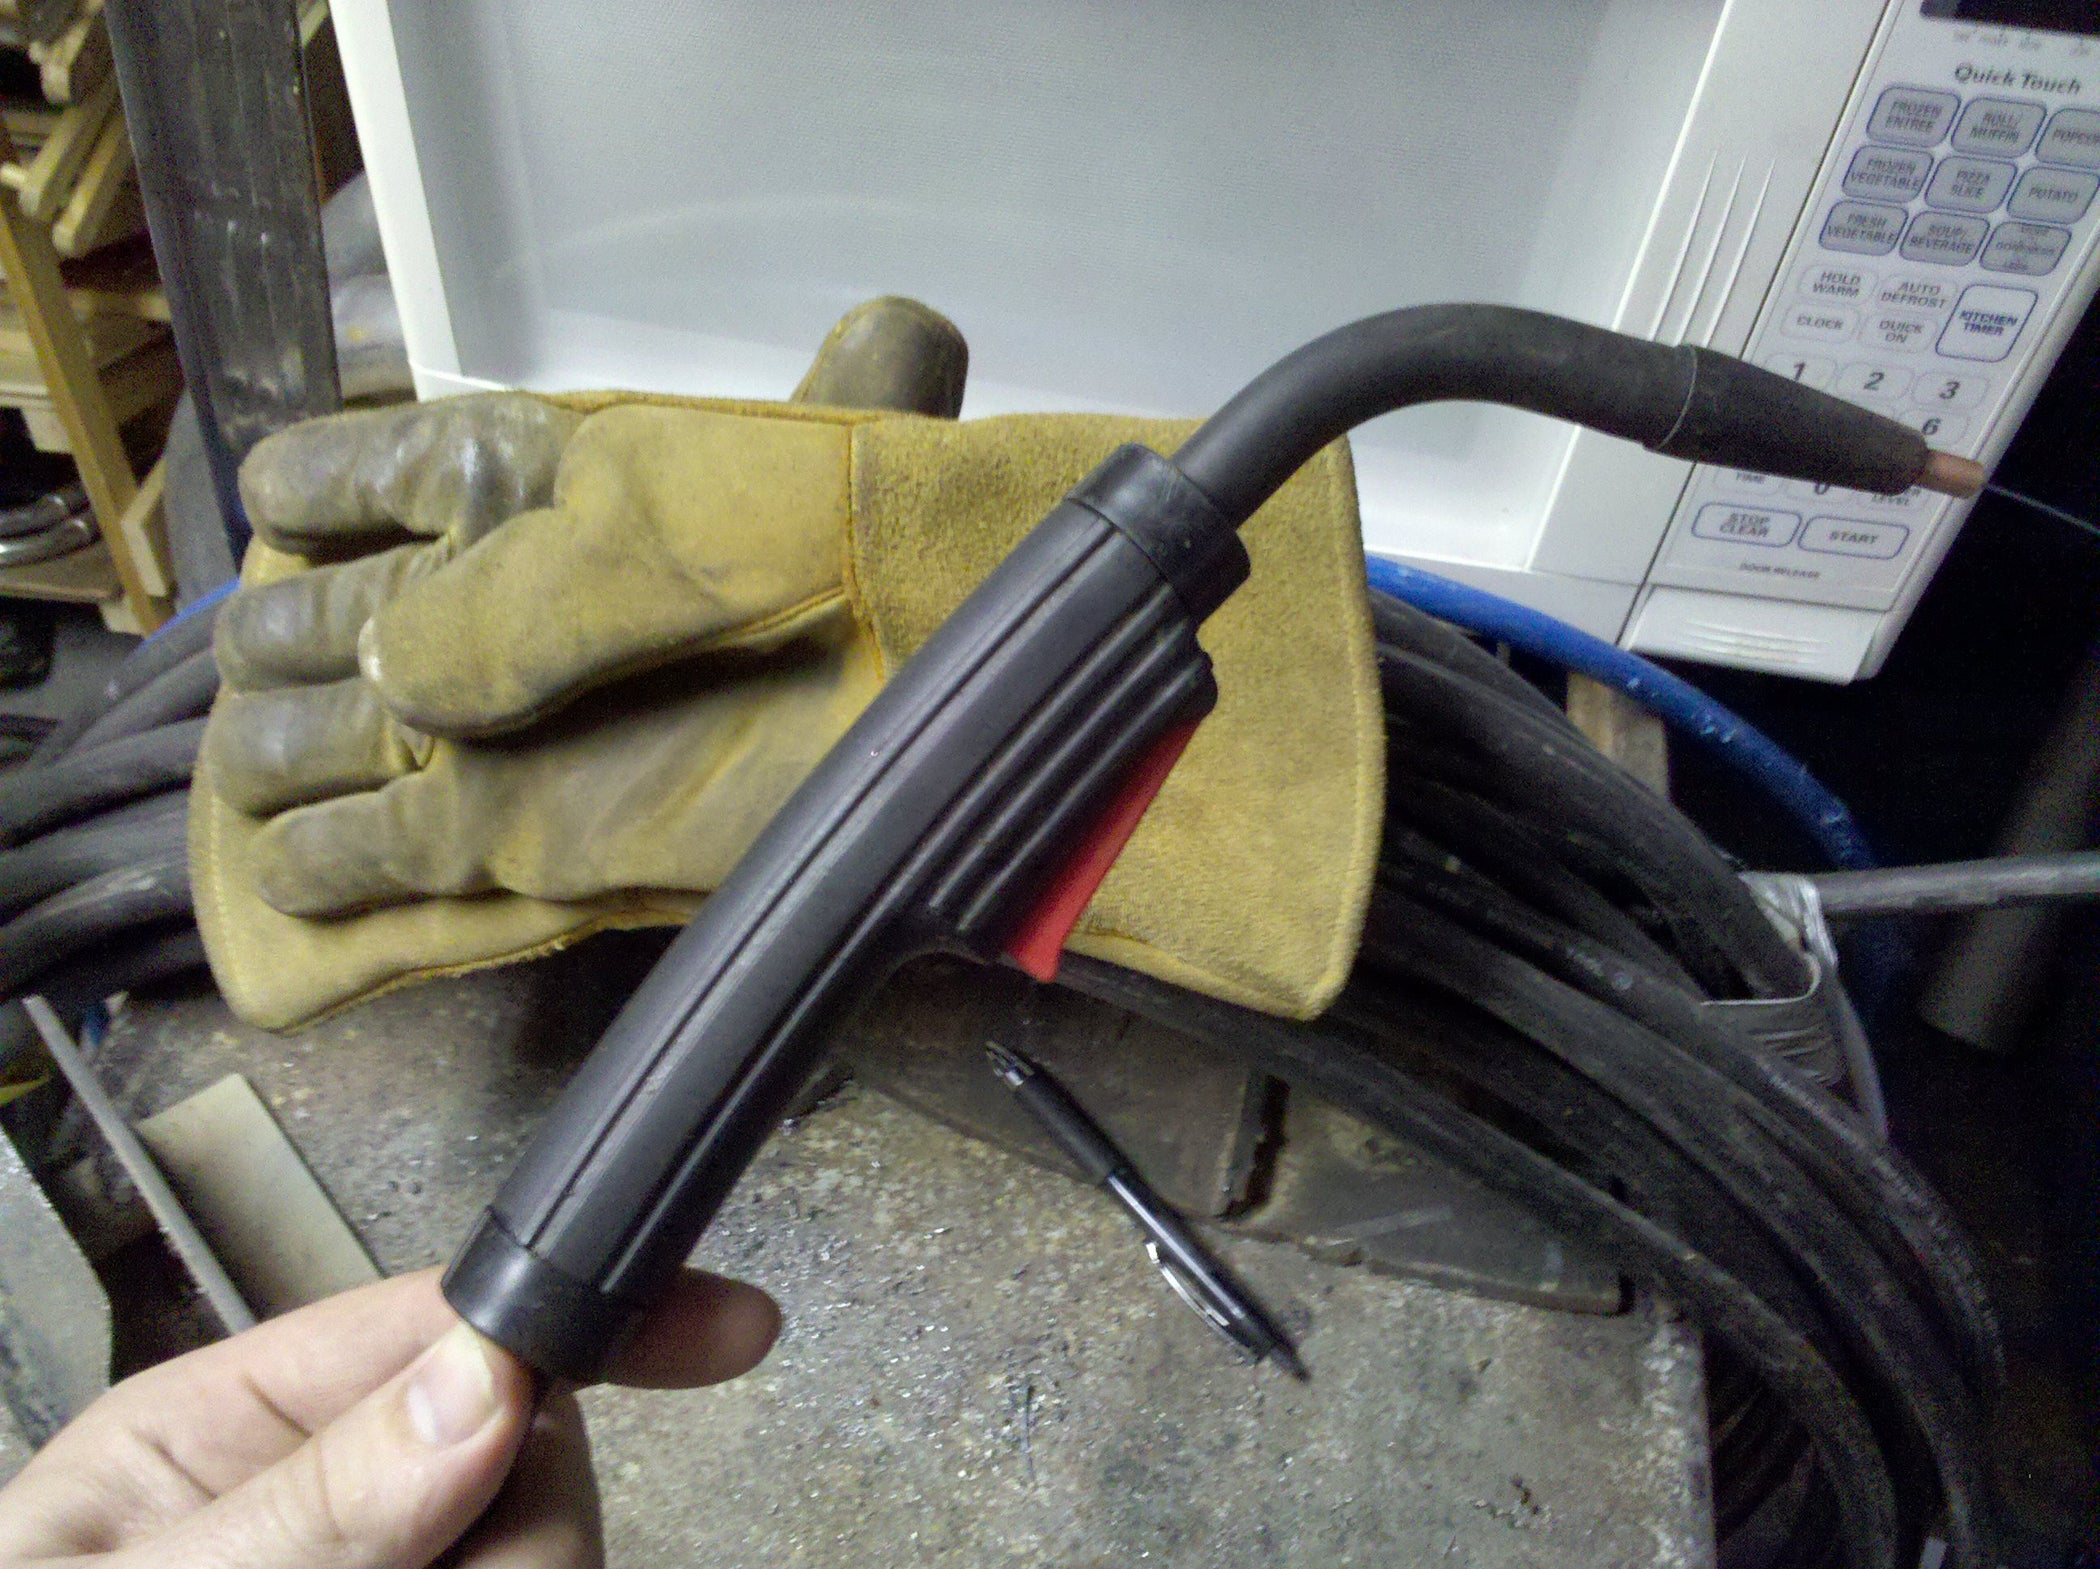 How to Fix a Lincoln MIG Welder That 'stutters' : 5 Steps ...